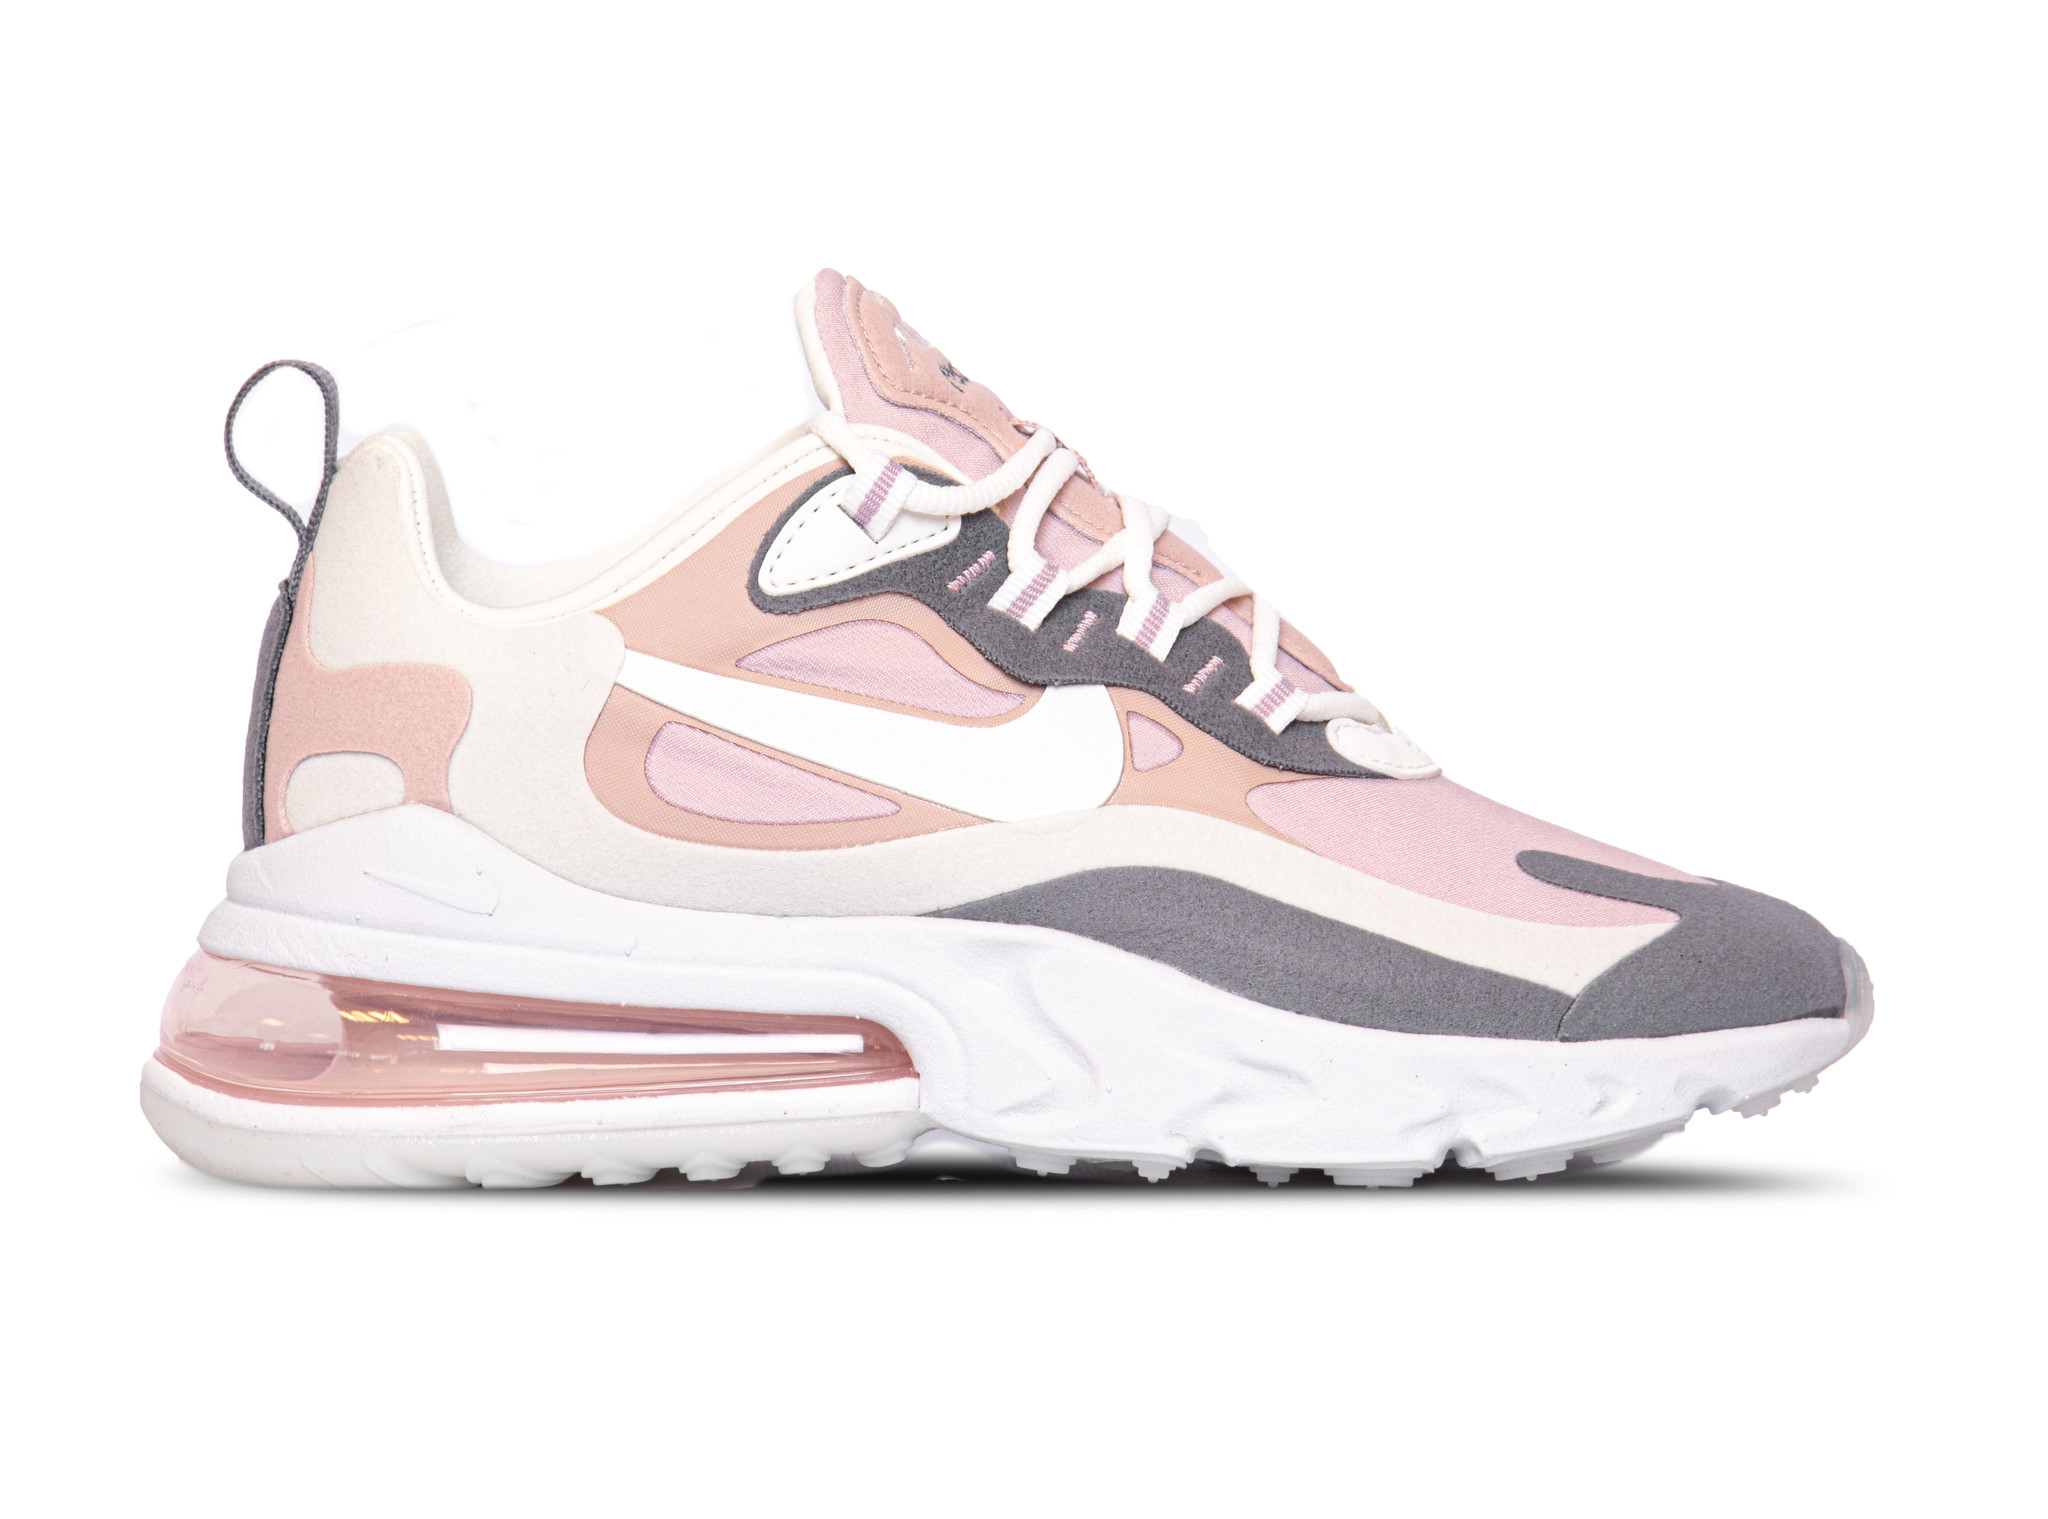 Nike Air Max 270 React Plum Chalk Summit White Stone Mauve CI3899 500